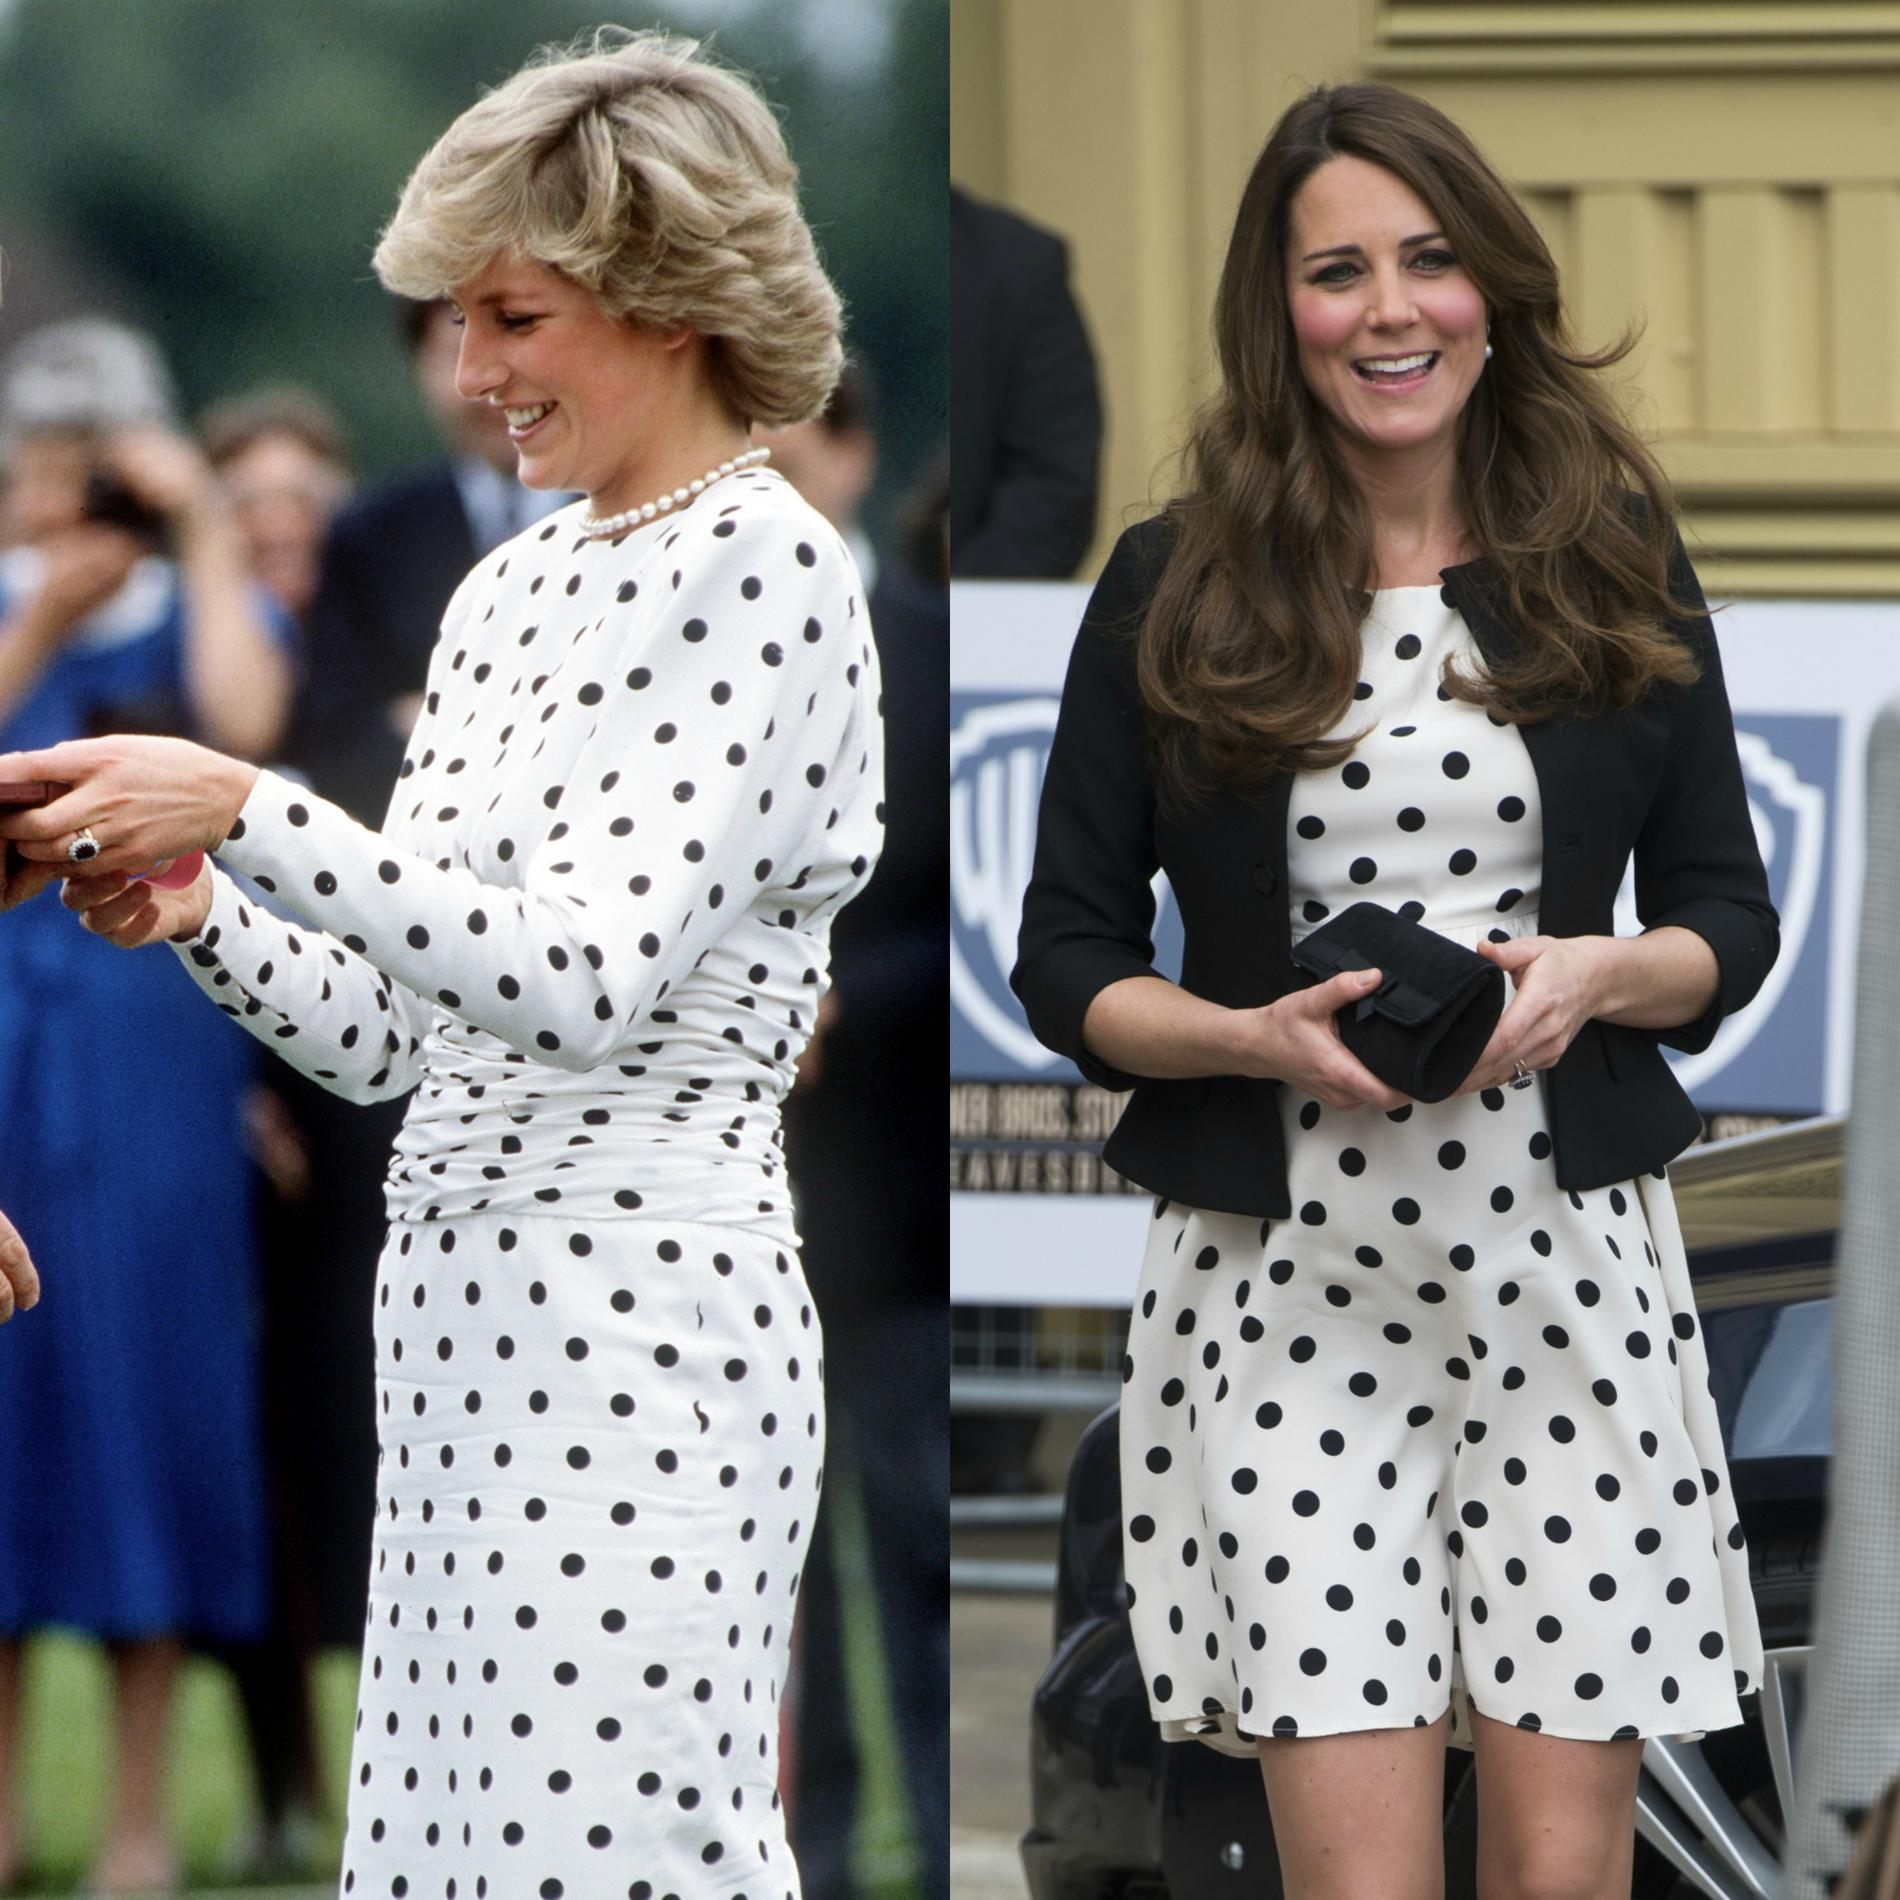 Les points communs mode de Lady Diana et Kate Middleton - Les pois